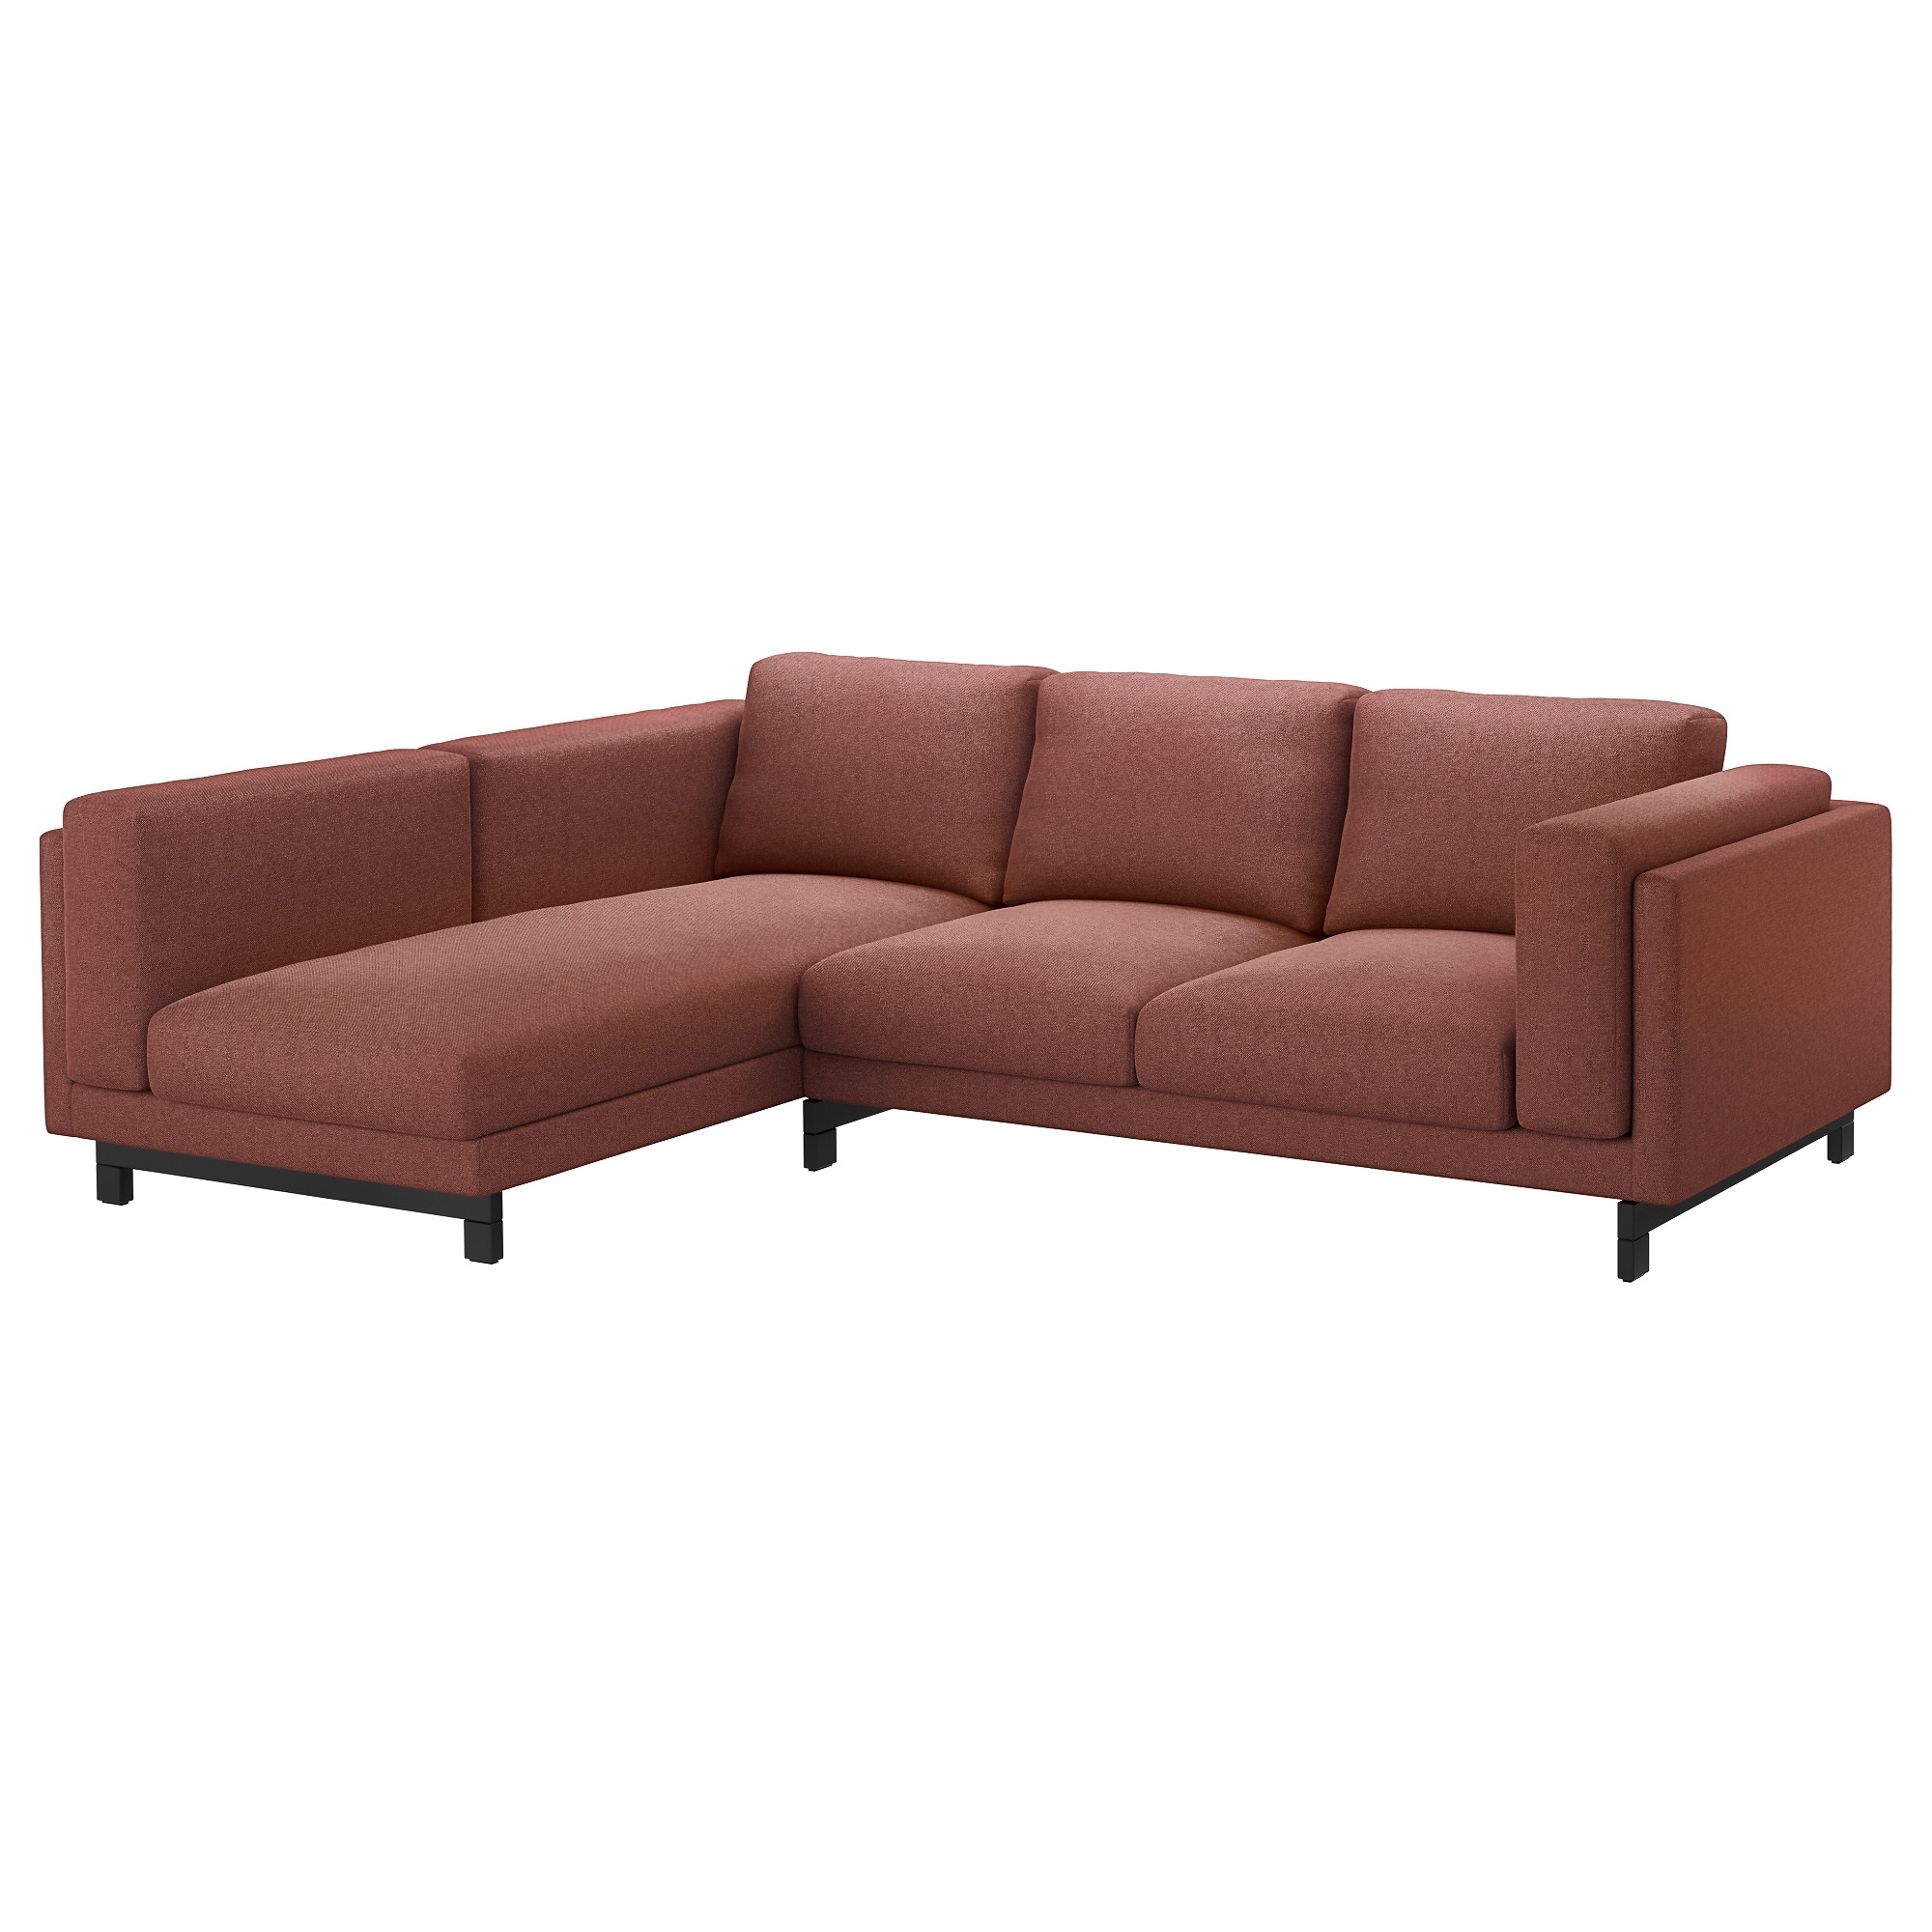 Nockeby Sofa - With Chaise, Chrome Plated - Ikea inside Haven Blue Steel 3 Piece Sectionals (Image 24 of 30)